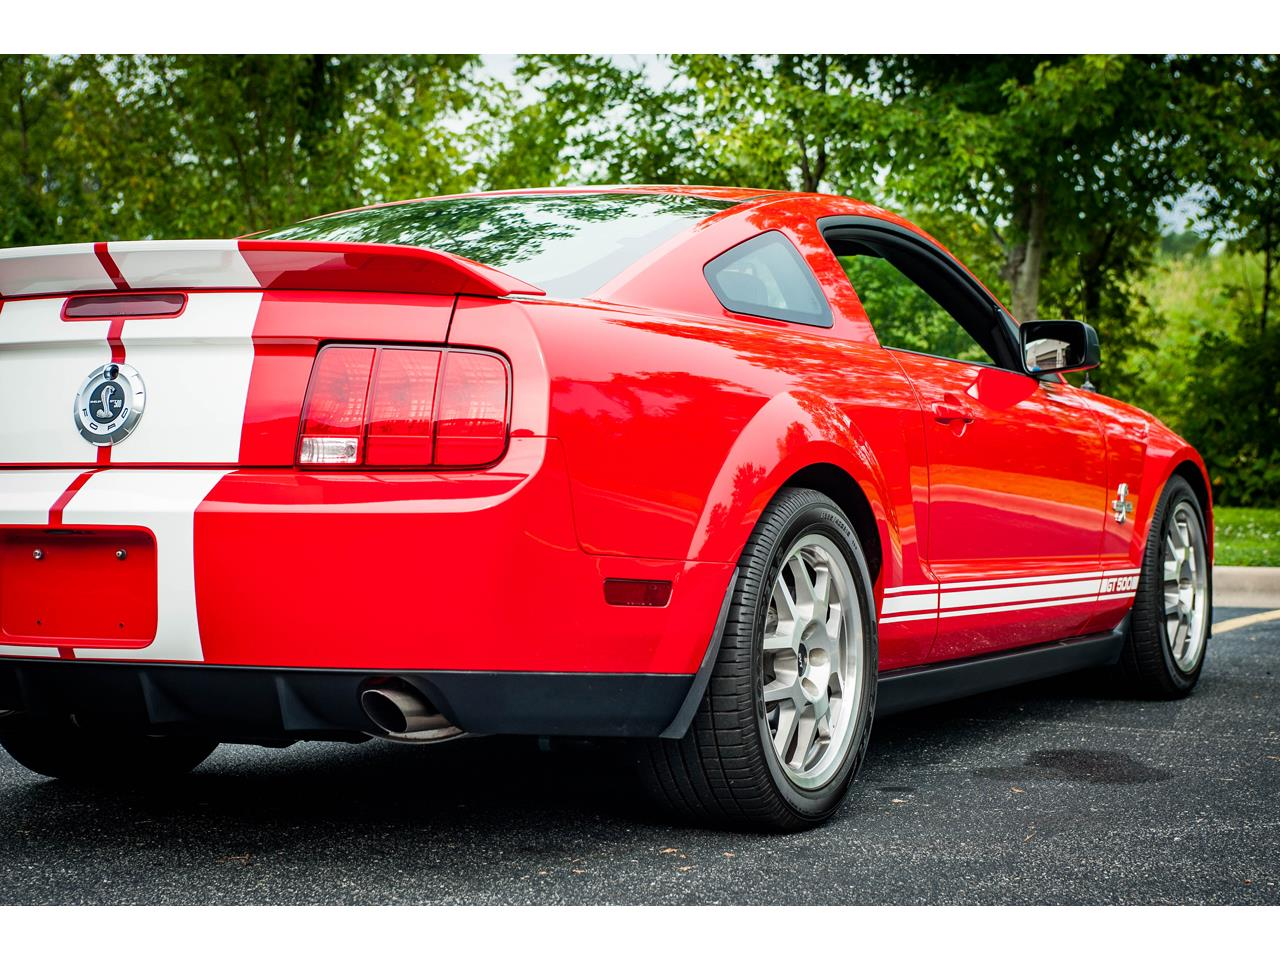 2007 Ford Mustang (CC-1253190) for sale in O'Fallon, Illinois